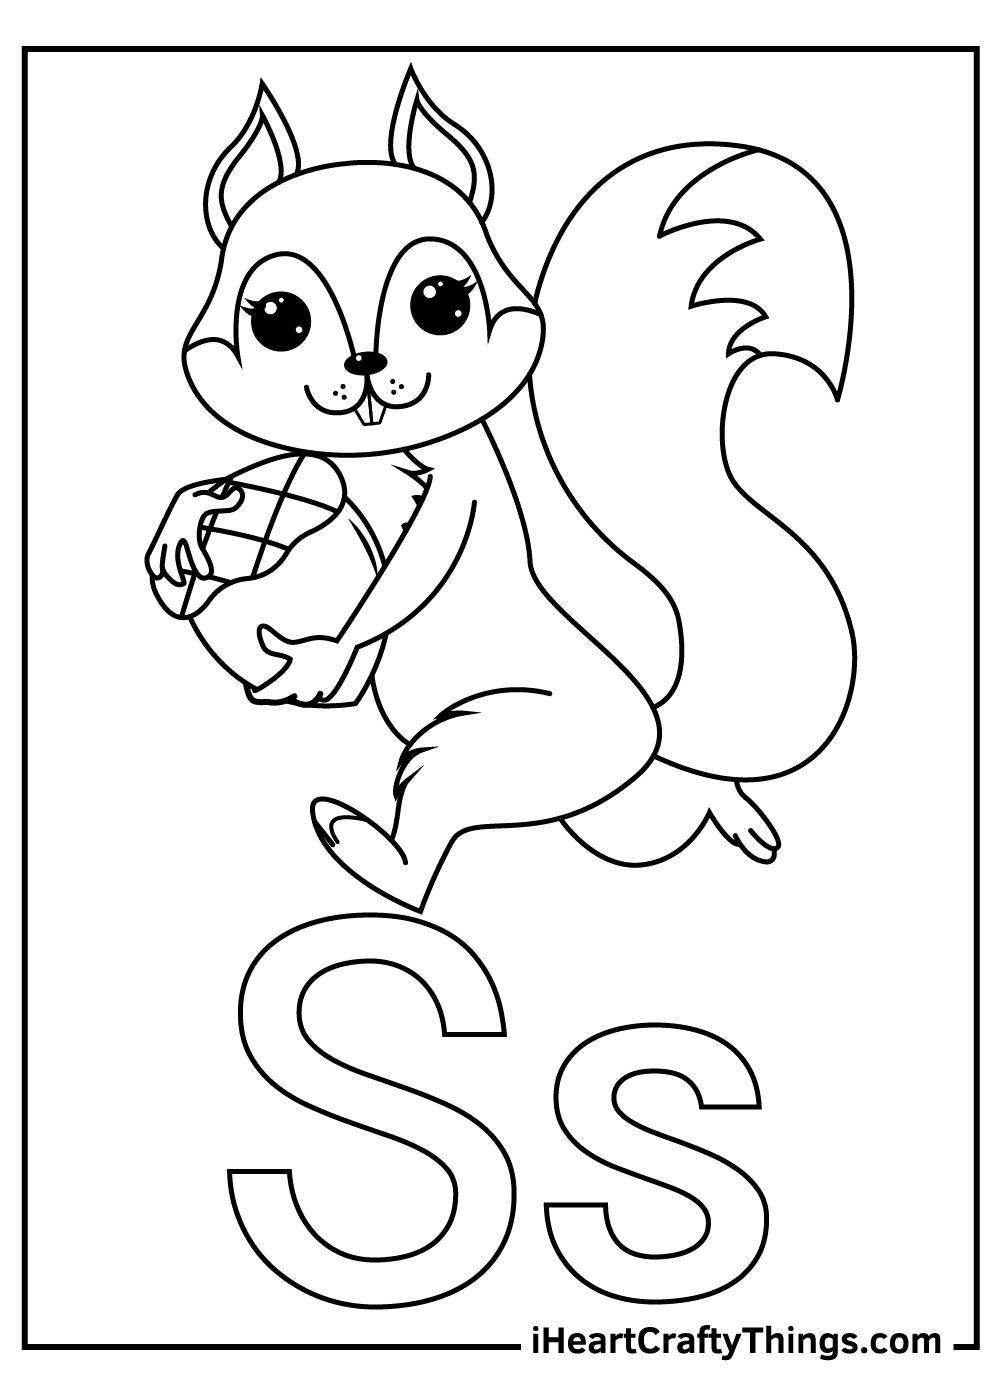 s is for squirrel coloring for toddlers coloring pages free